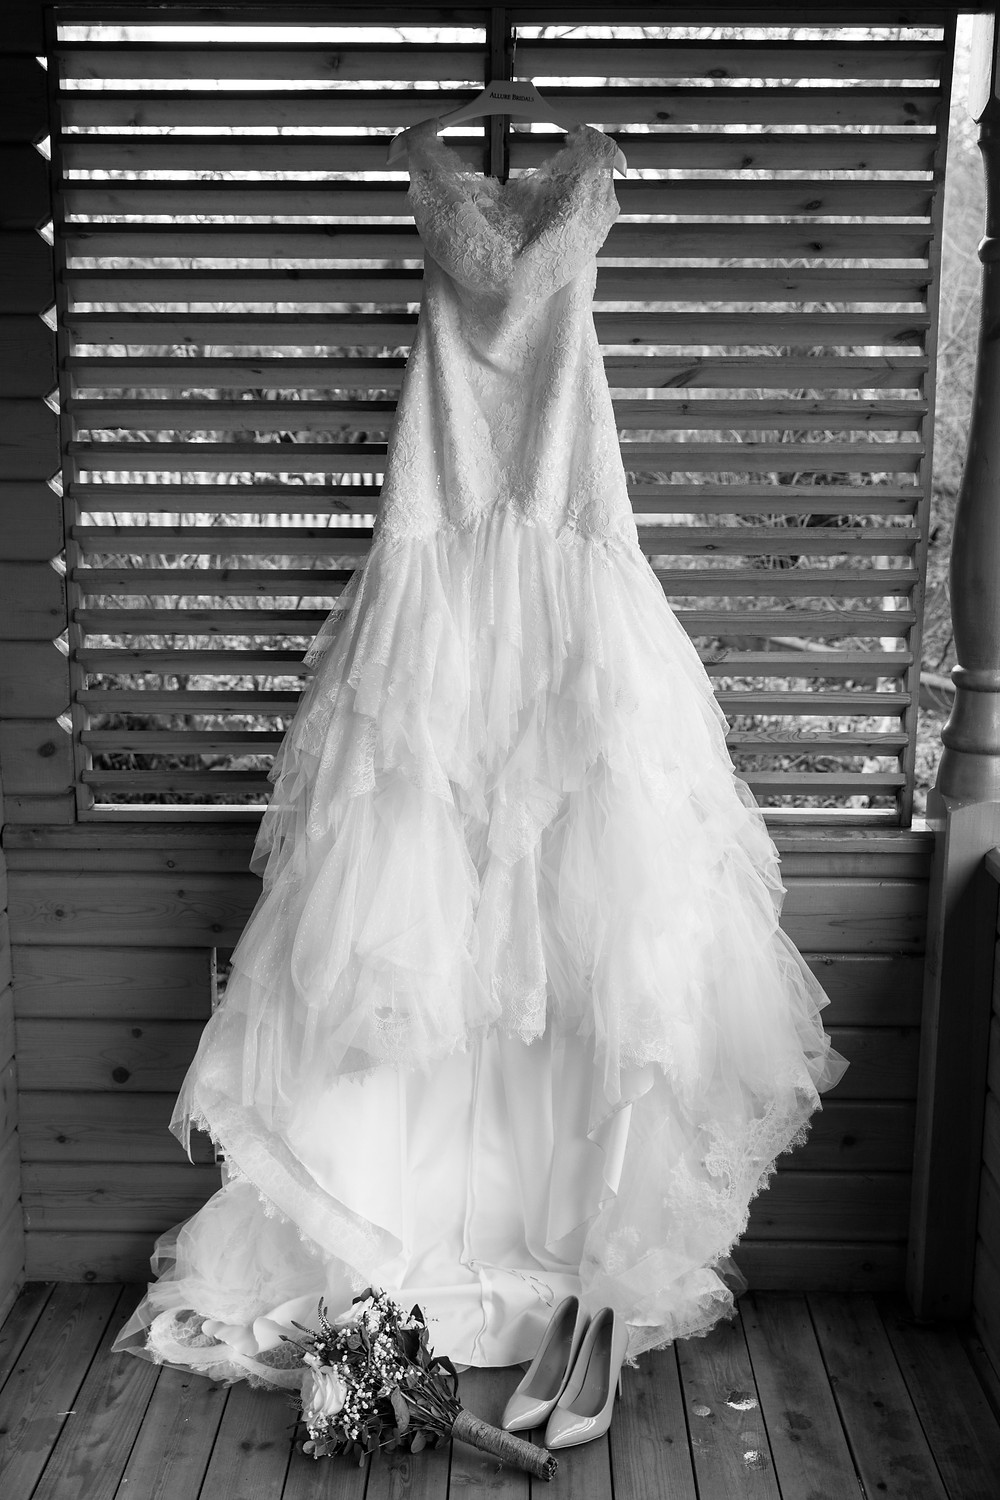 Stunning wedding photograph of the brides dress